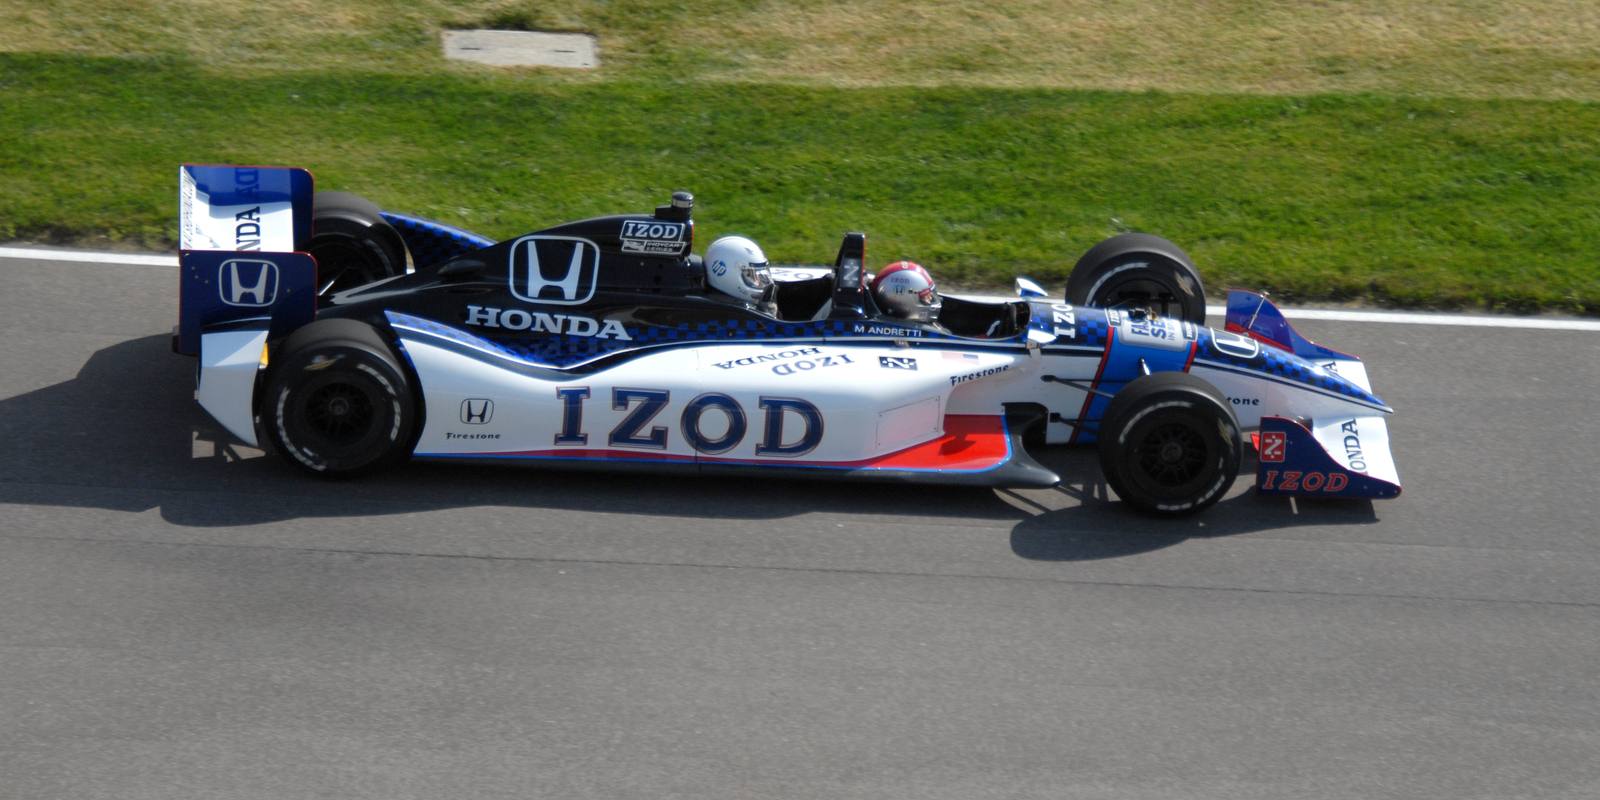 91 year old woman takes 290 km/h Indy car ride, proves racing has ...